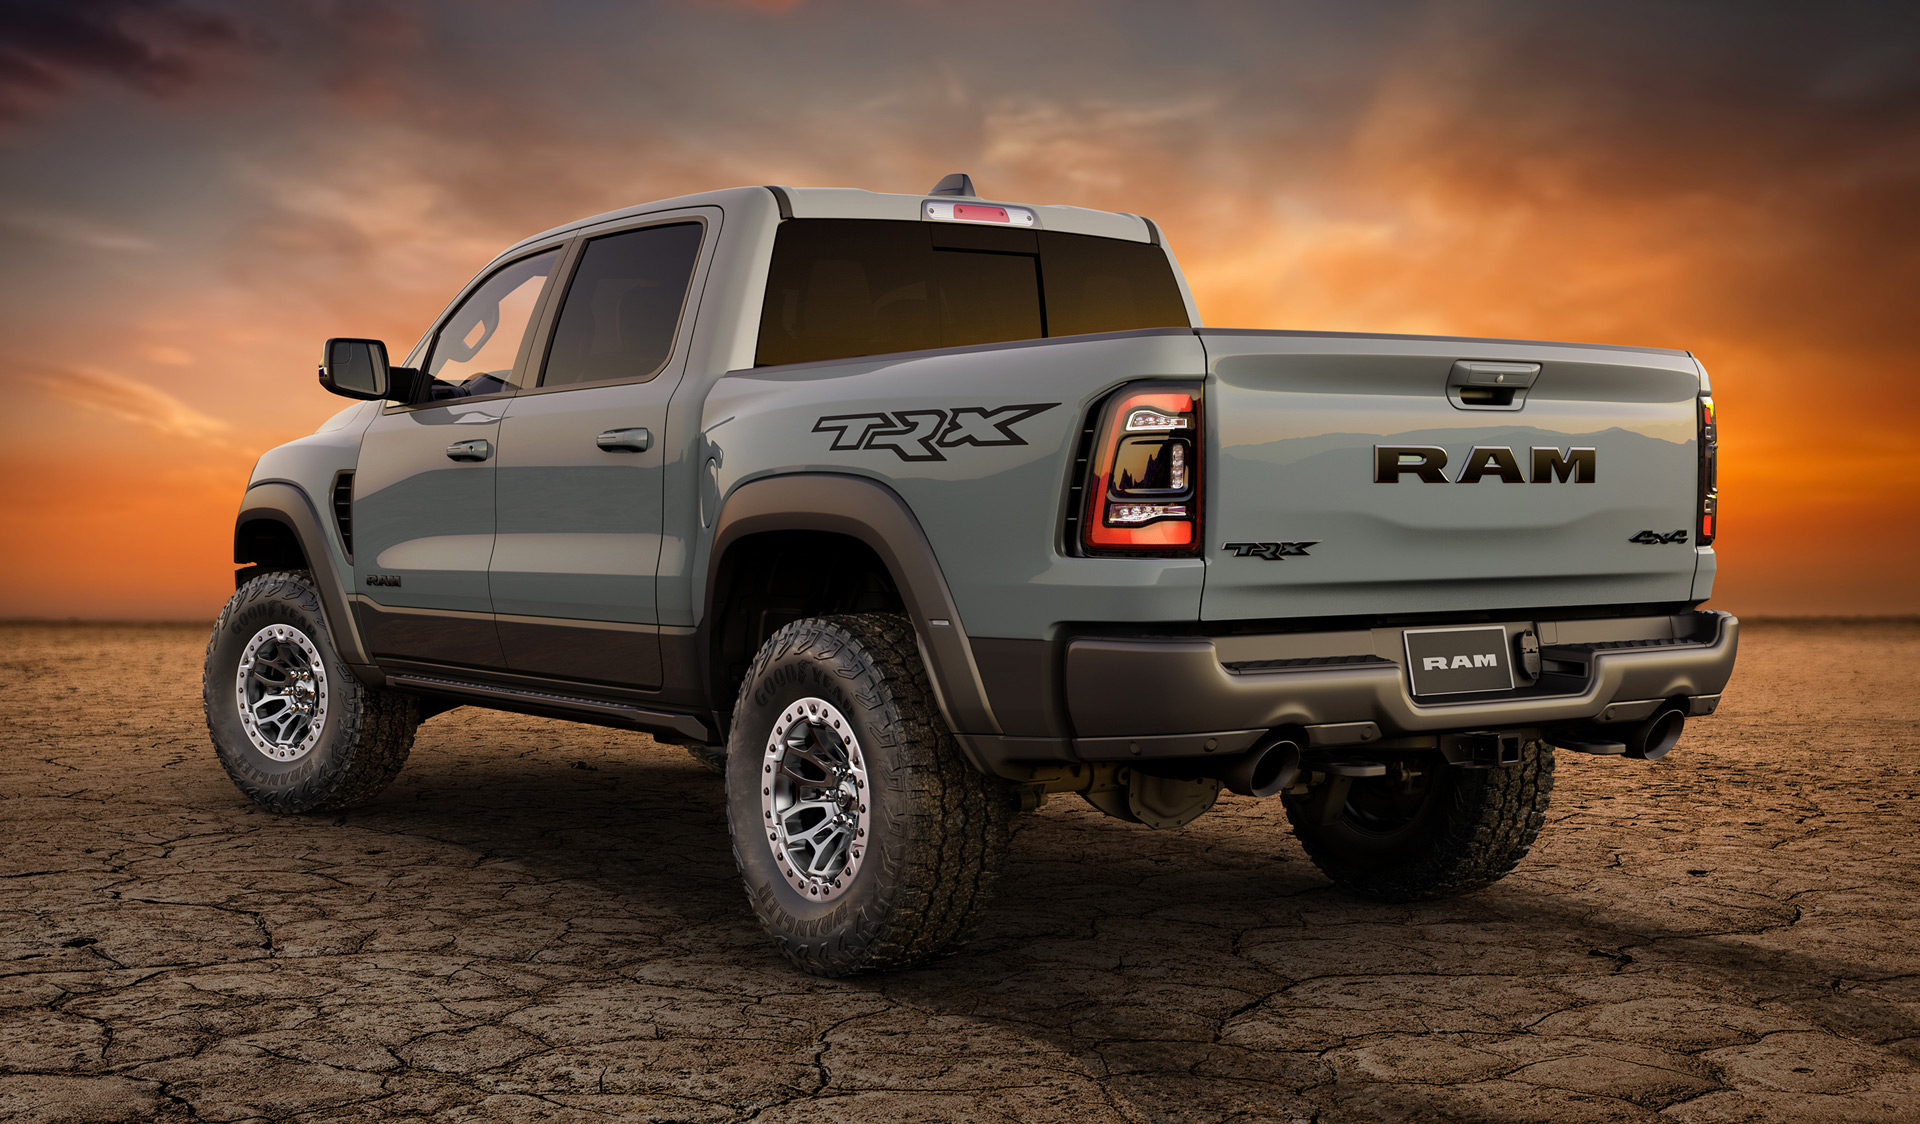 The 92 010 Ram 1500 Trx Launch Edition Sold Out In 3 Hours